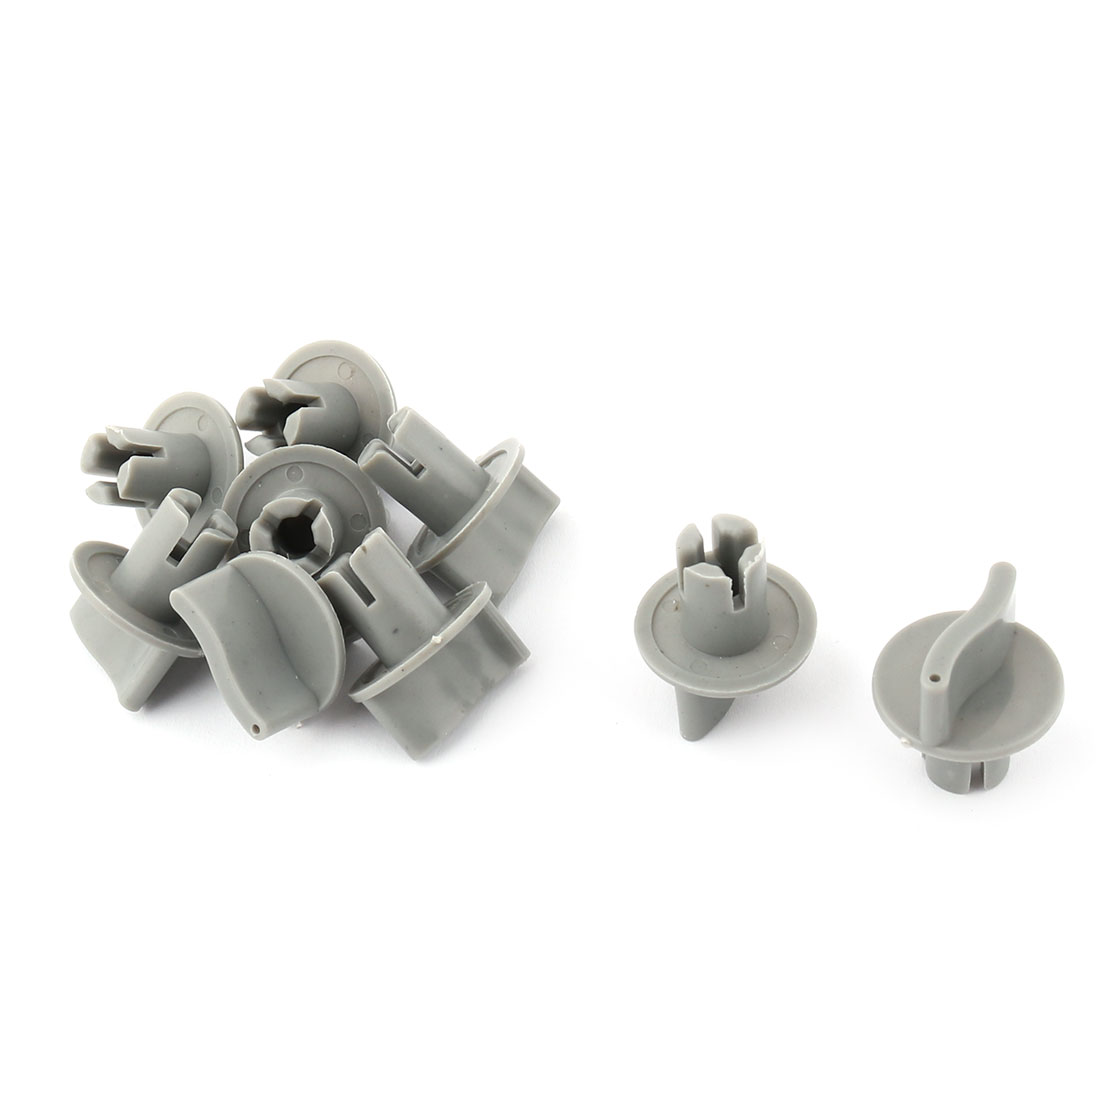 Home Plastic Switch Turning Head Furnace Potentiometer Control Knob Gray 9pcs